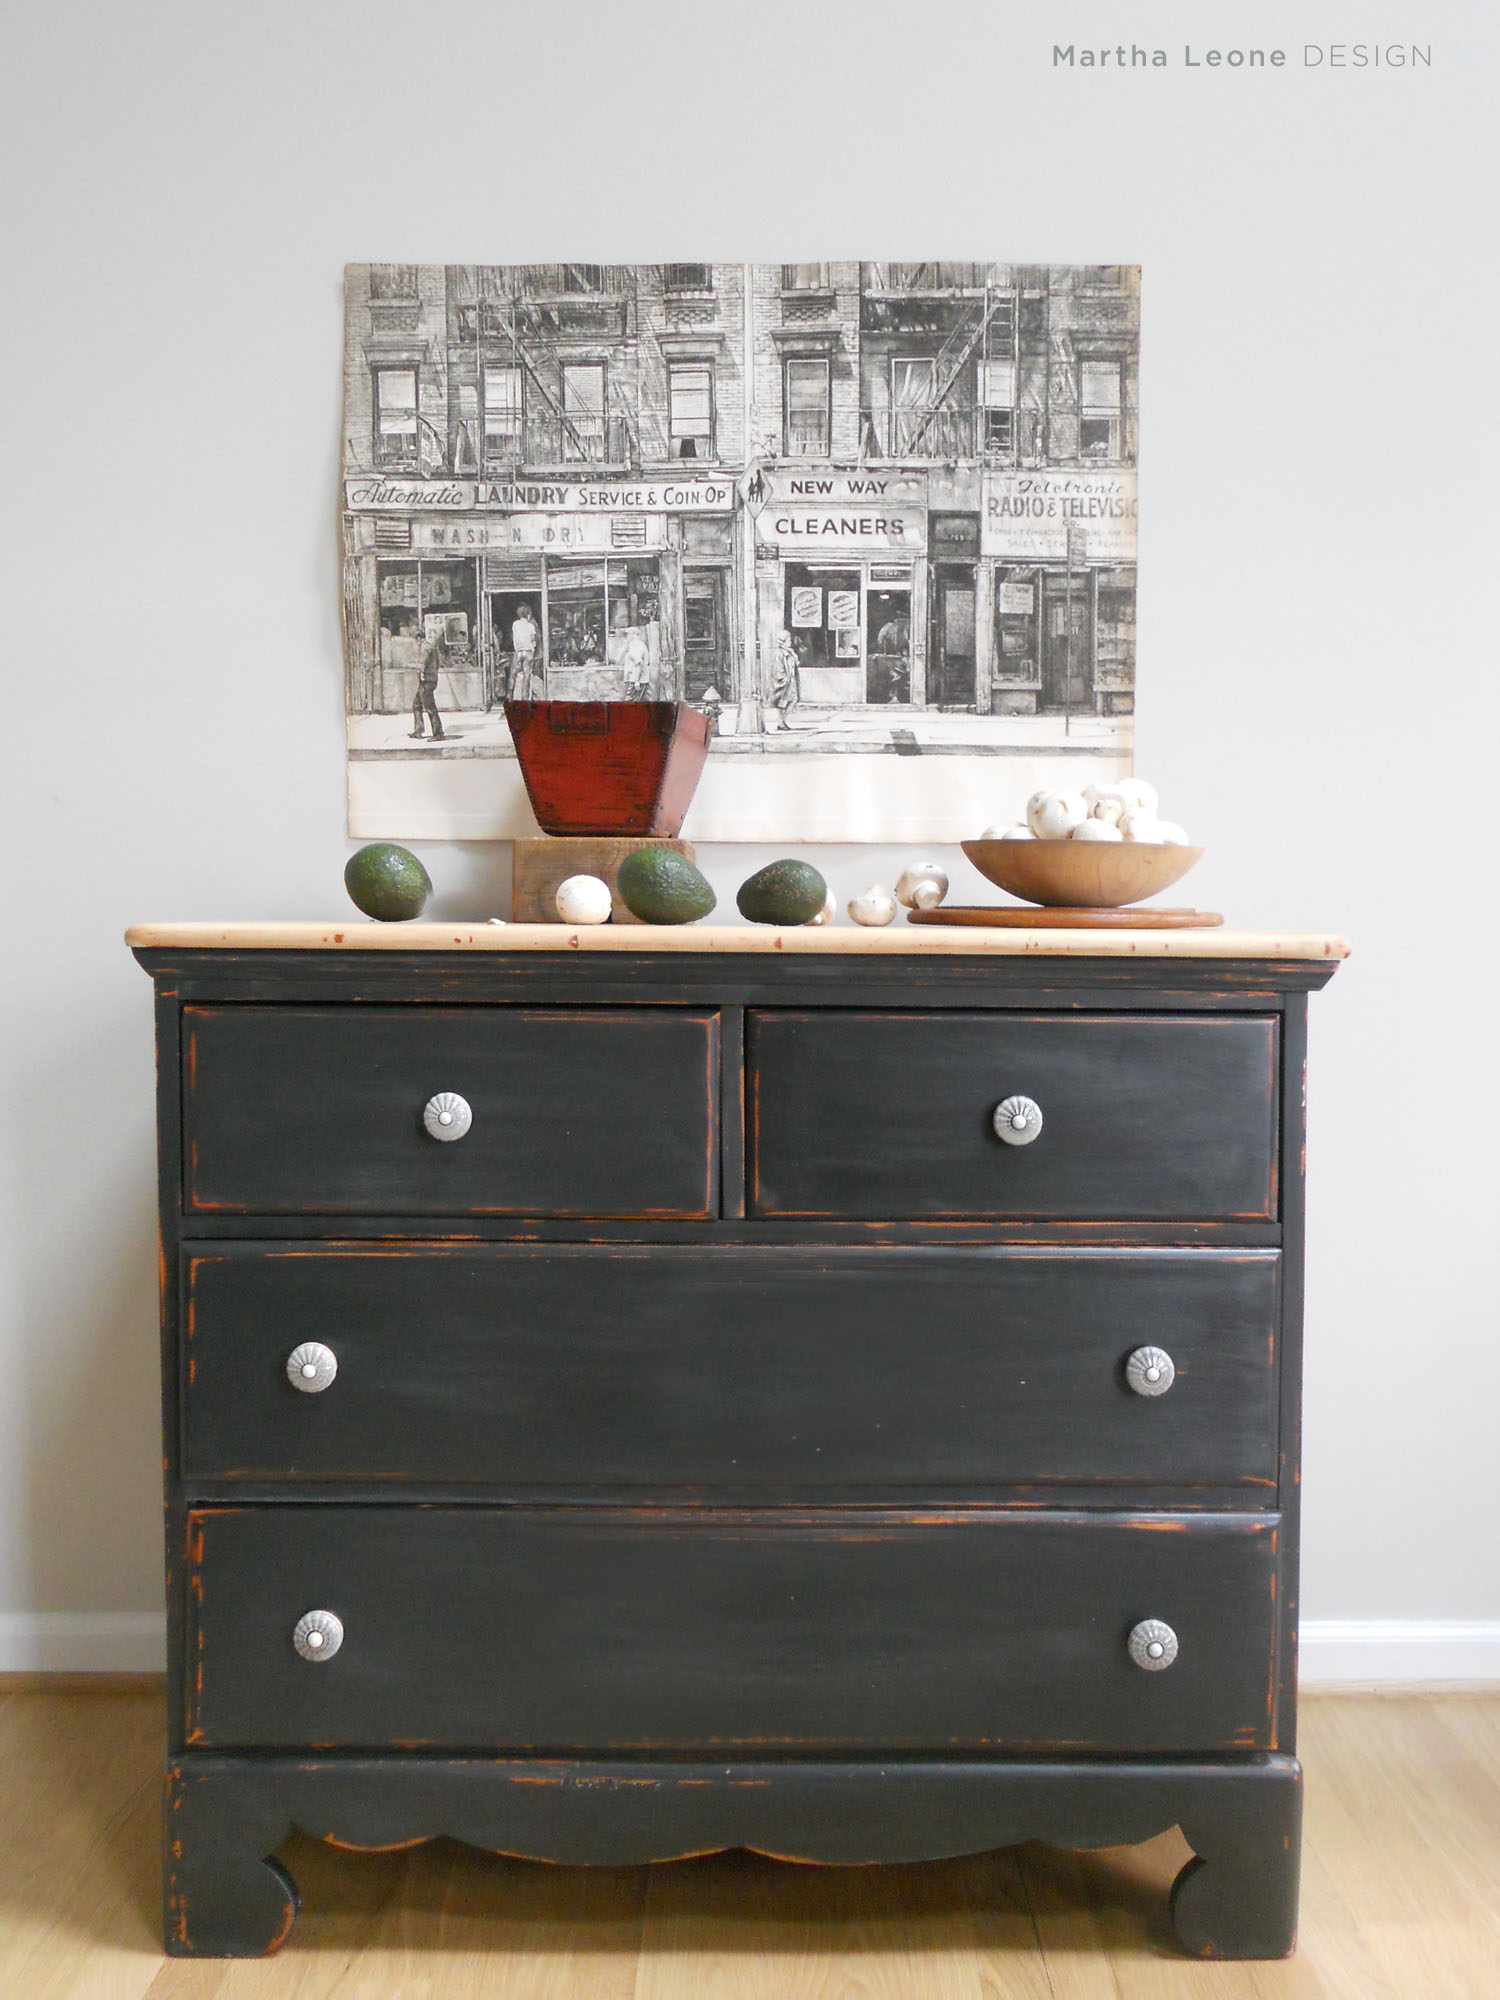 Black Chest of Drawers8 Martha Leone Design